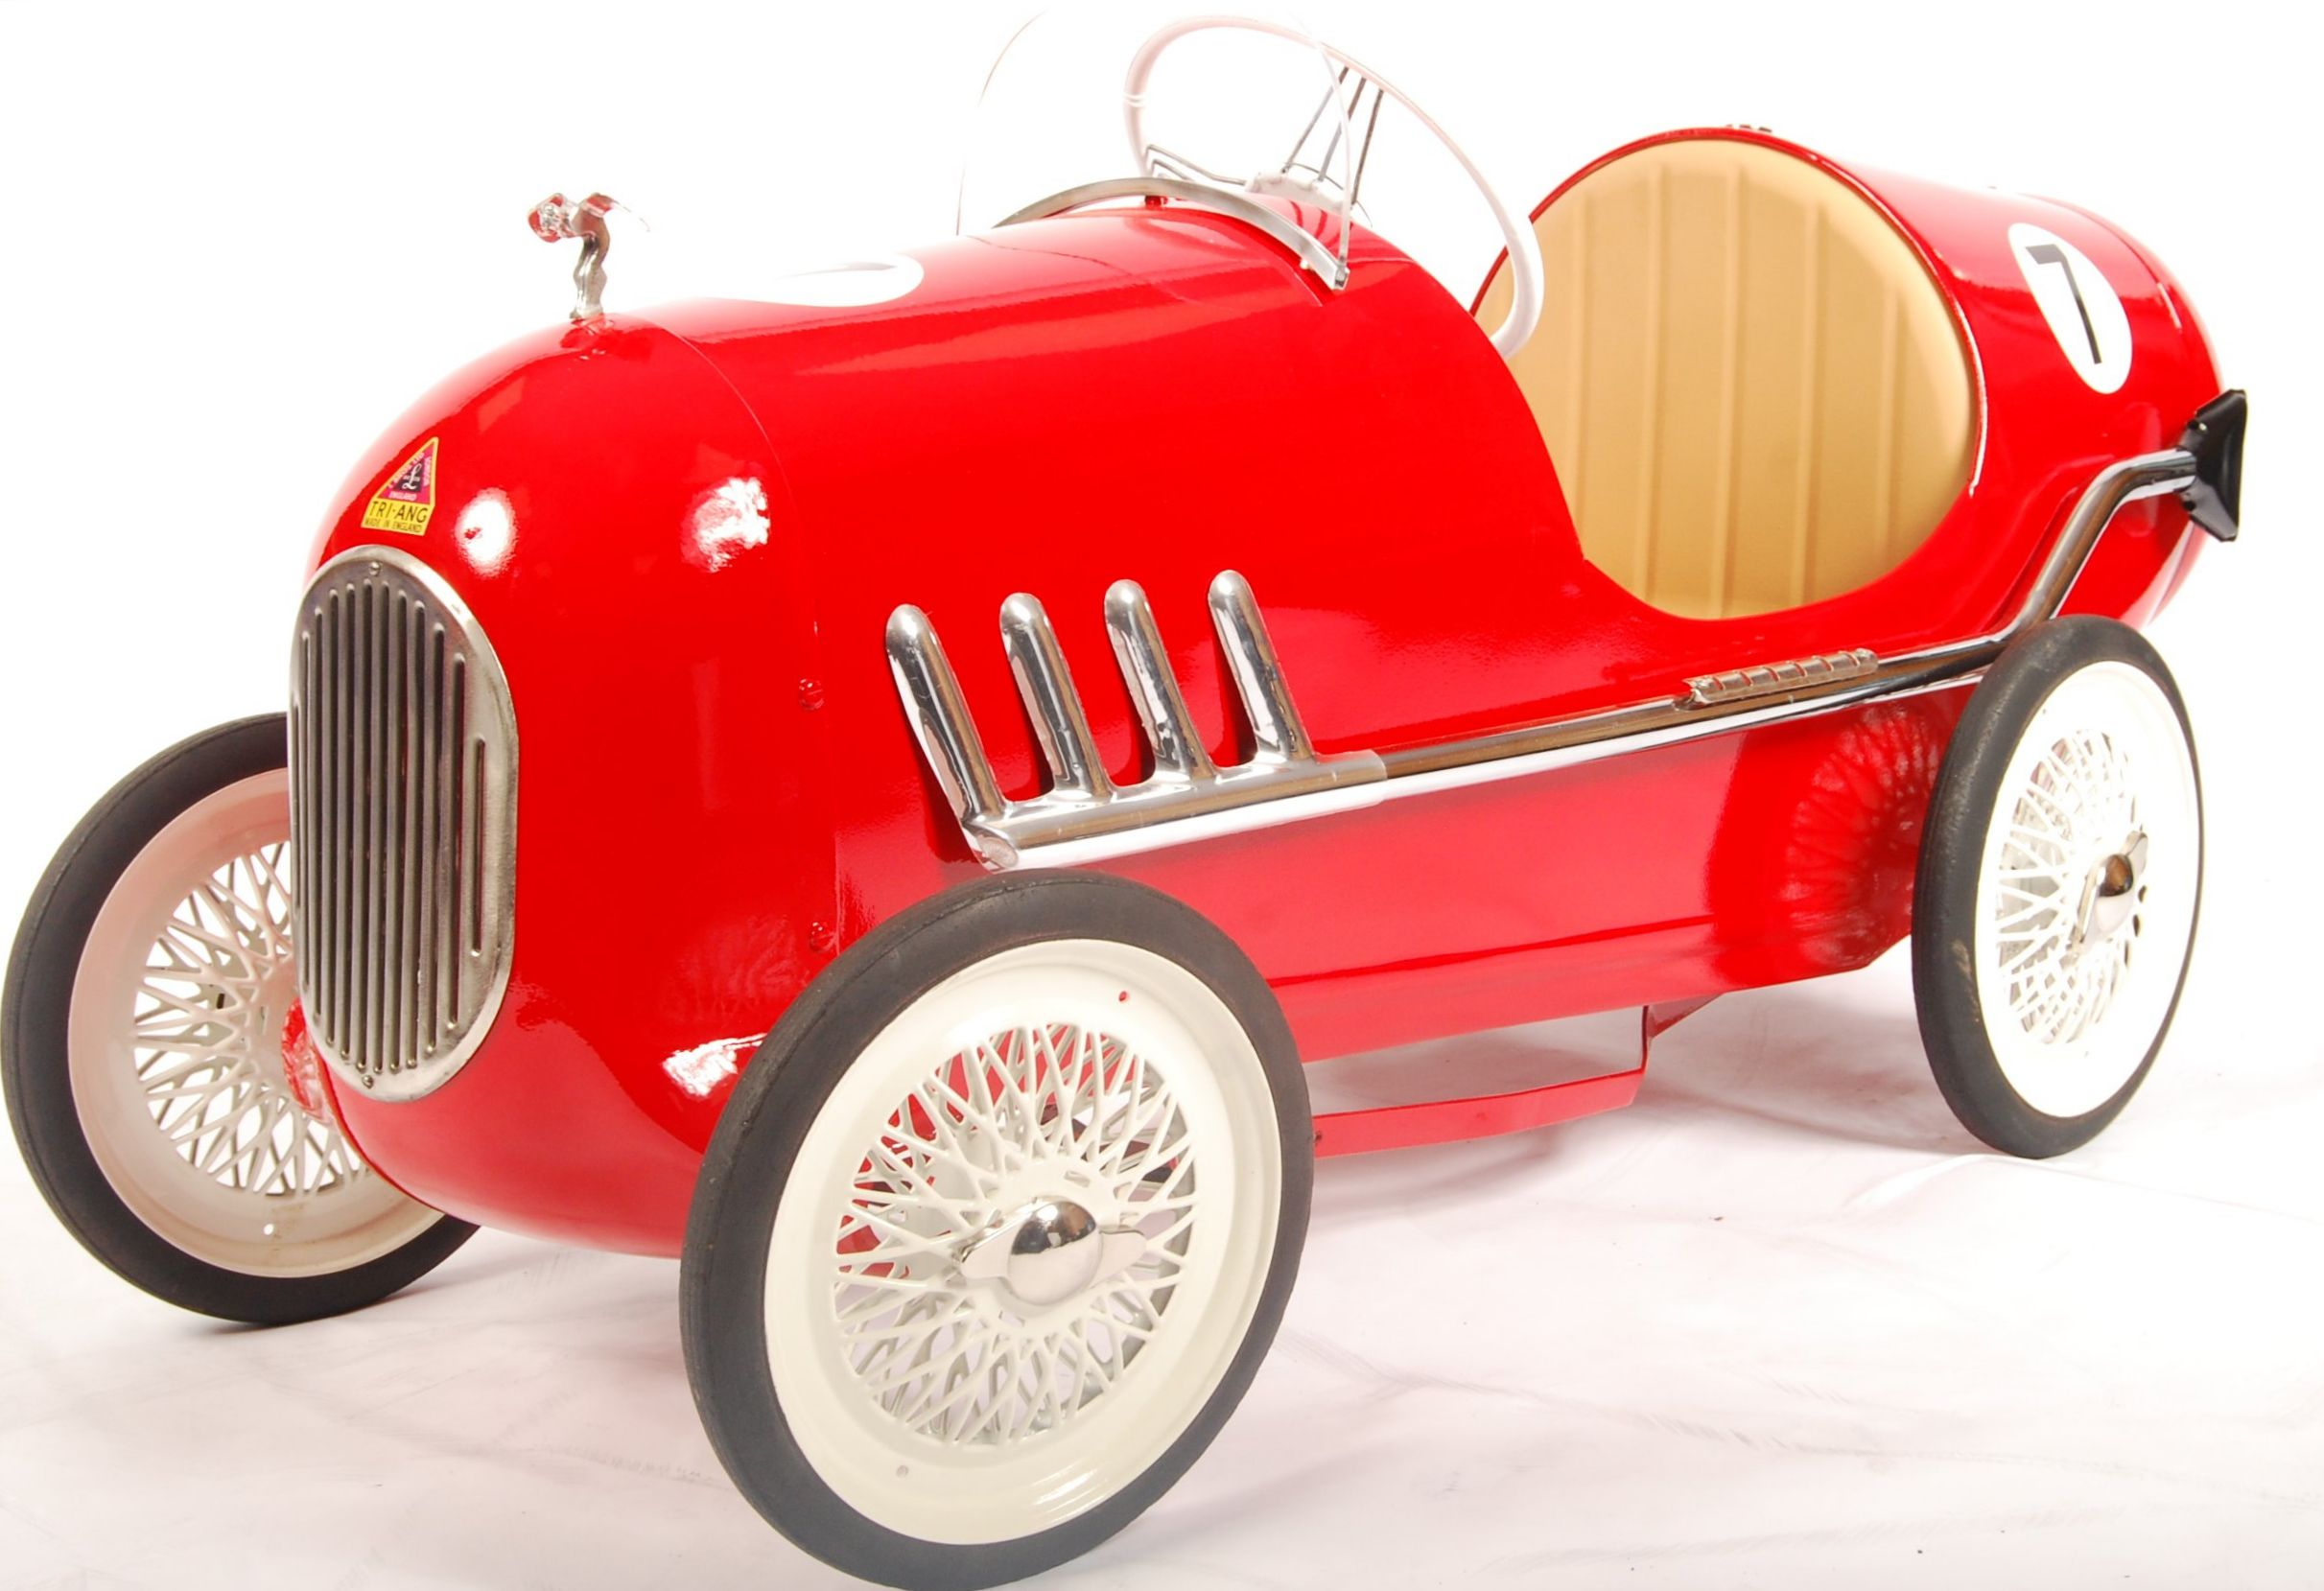 Source East Bristol Auctions In 2020 Pedal Cars Vintage Pedal Cars Car